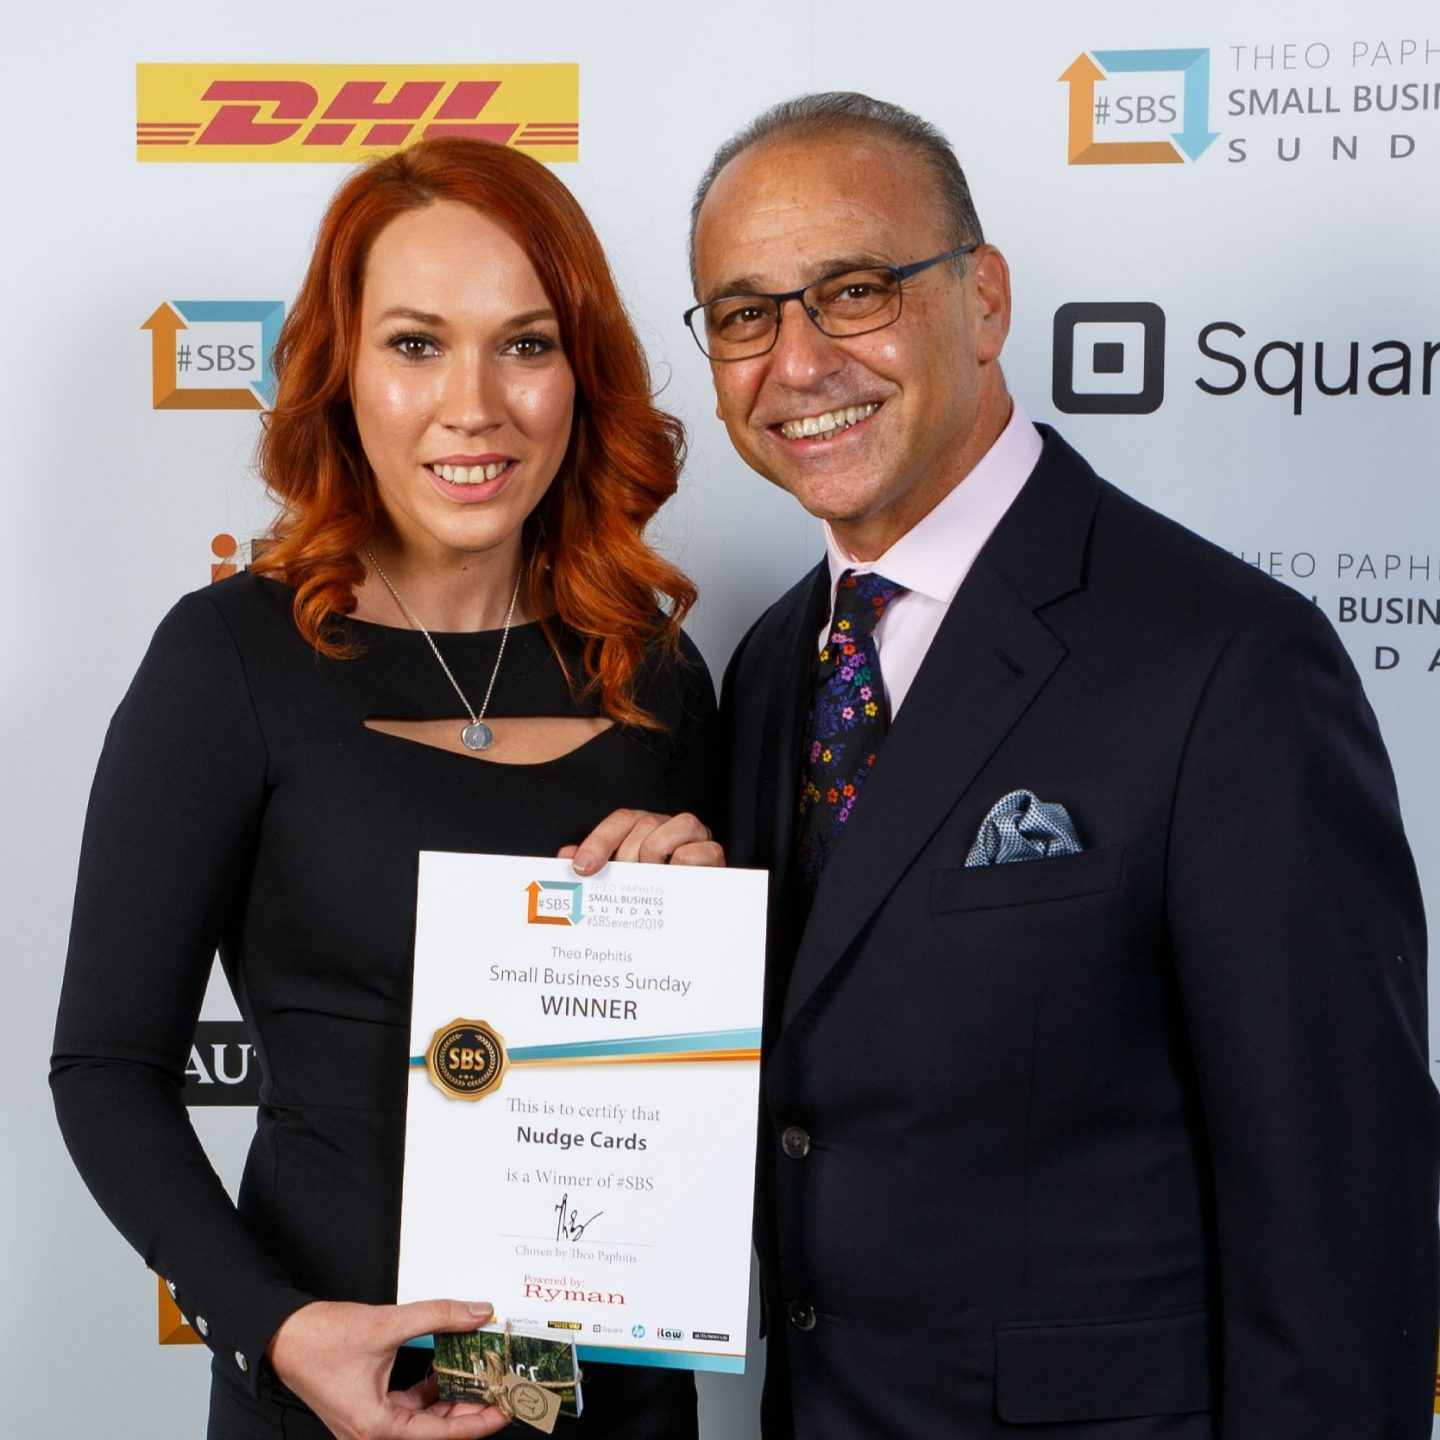 Myself and Theo Paphitis collecting my award